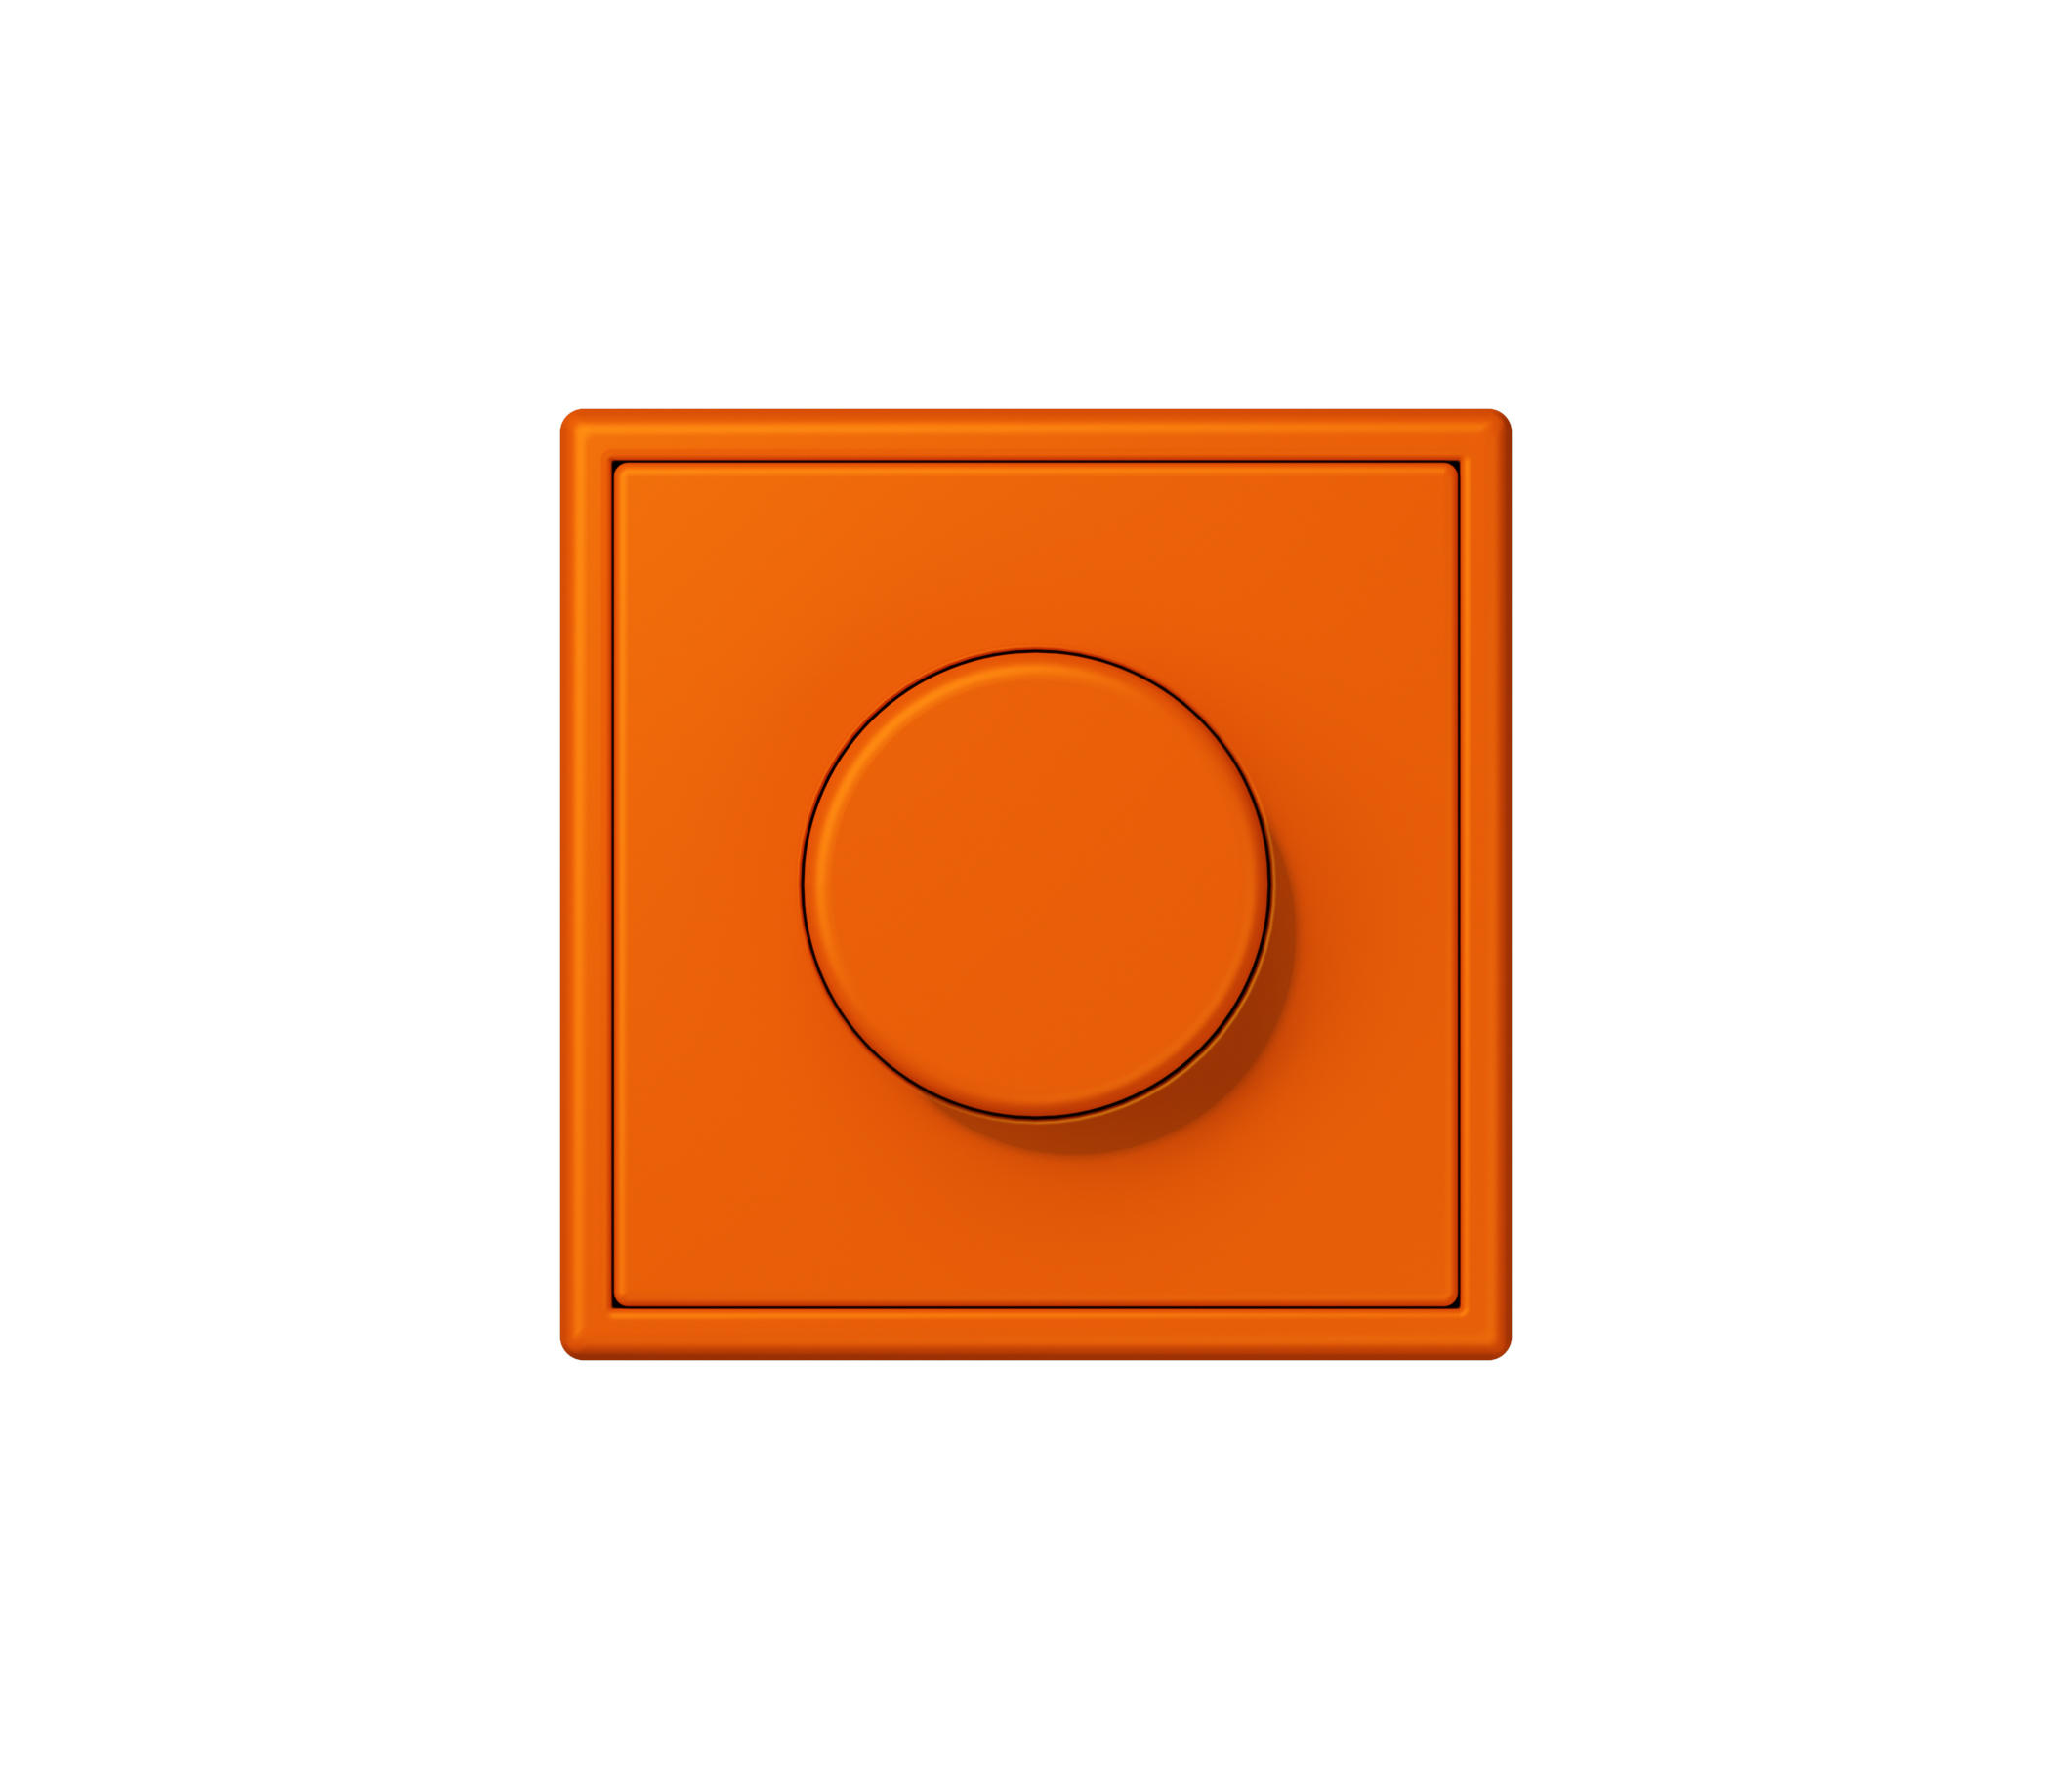 Ls 990 In Les Couleurs Le Corbusier Rotary Dimmer 32080 Orange Switches Electrical 101 By Jung